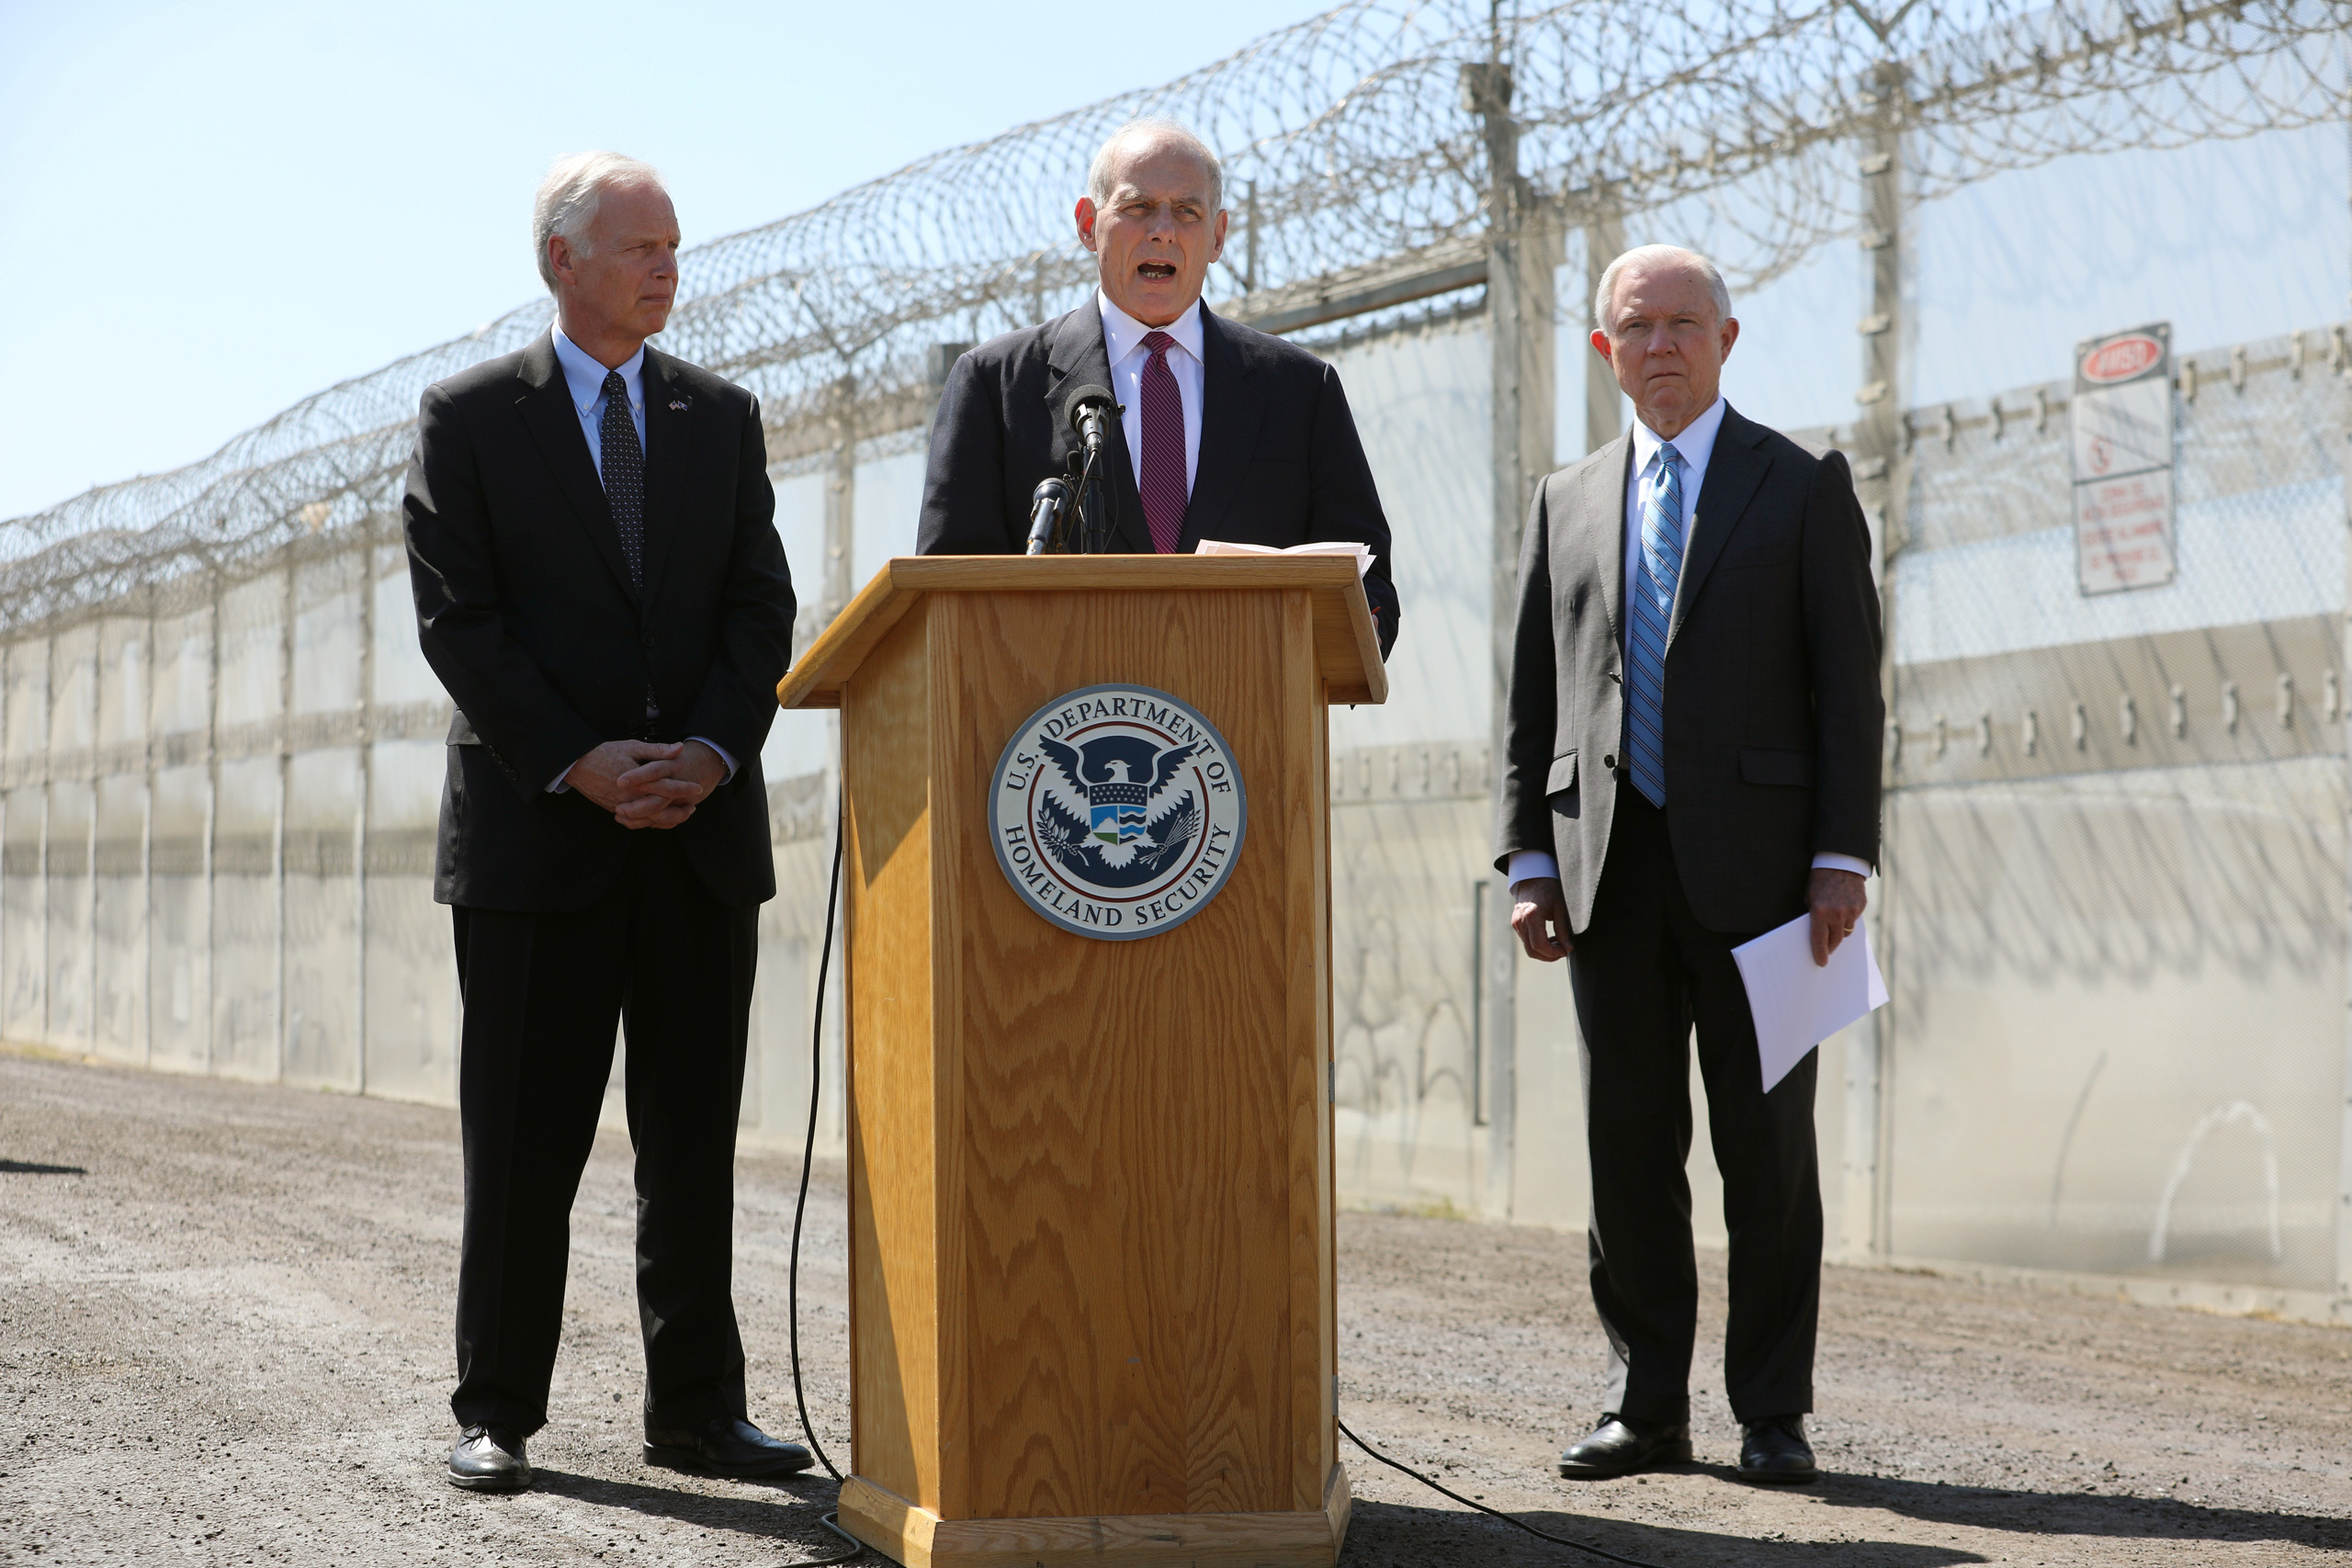 Secretary of Homeland Security John Kelly speaks as Attorney General Jeff Sessions and U.S. Senator Ron Johnson, Chairman of the Senate Committee on Homeland Security and Governmental Affairs listen during visit to the U.S. Mexico border fence in San Diego on April 21, 2017.